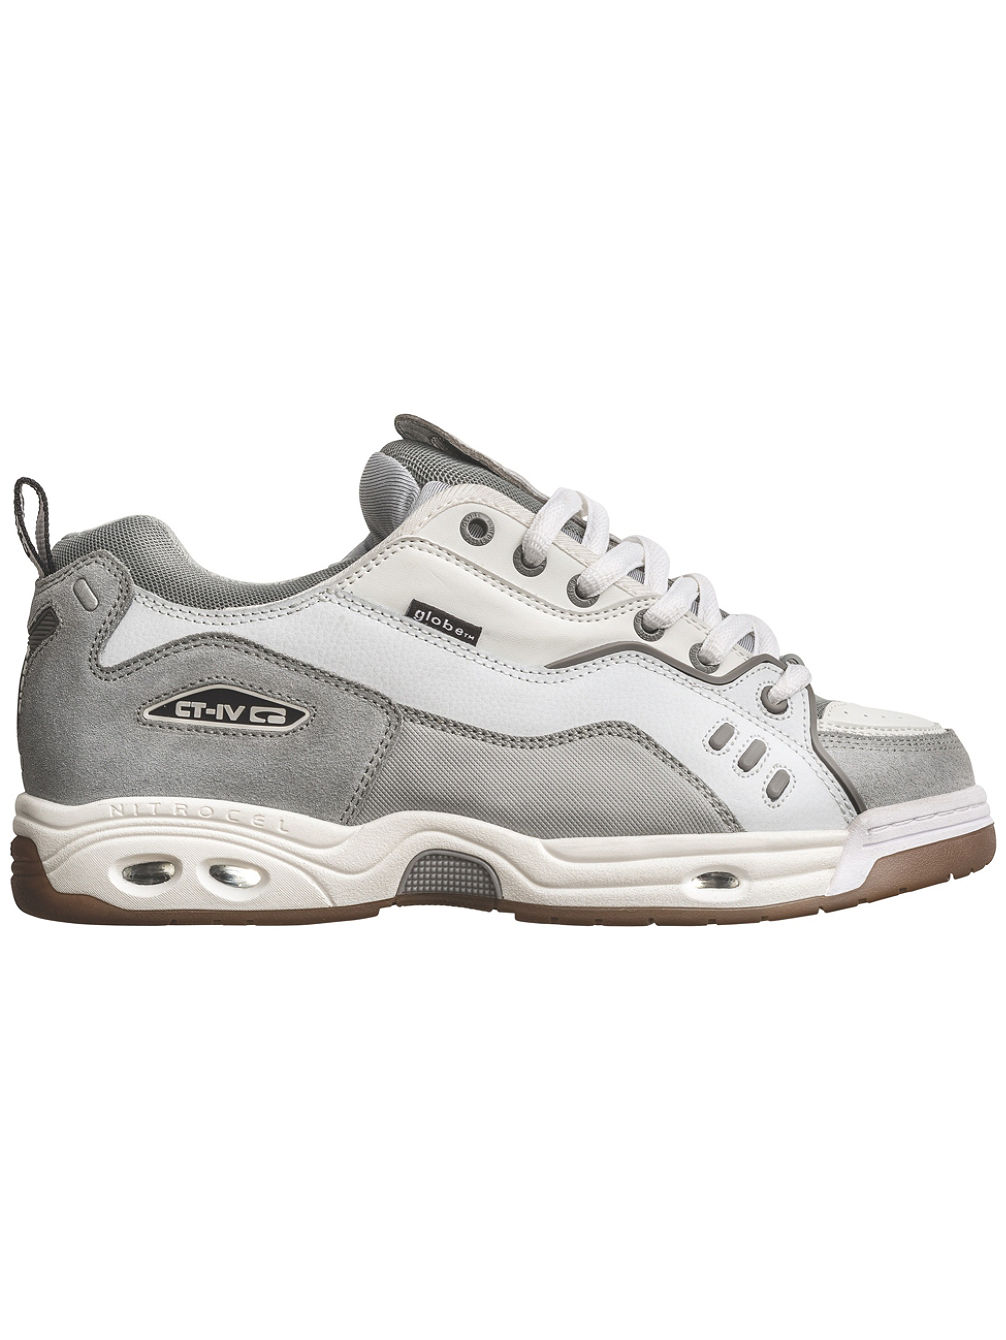 CT-IV Classic Sneakers